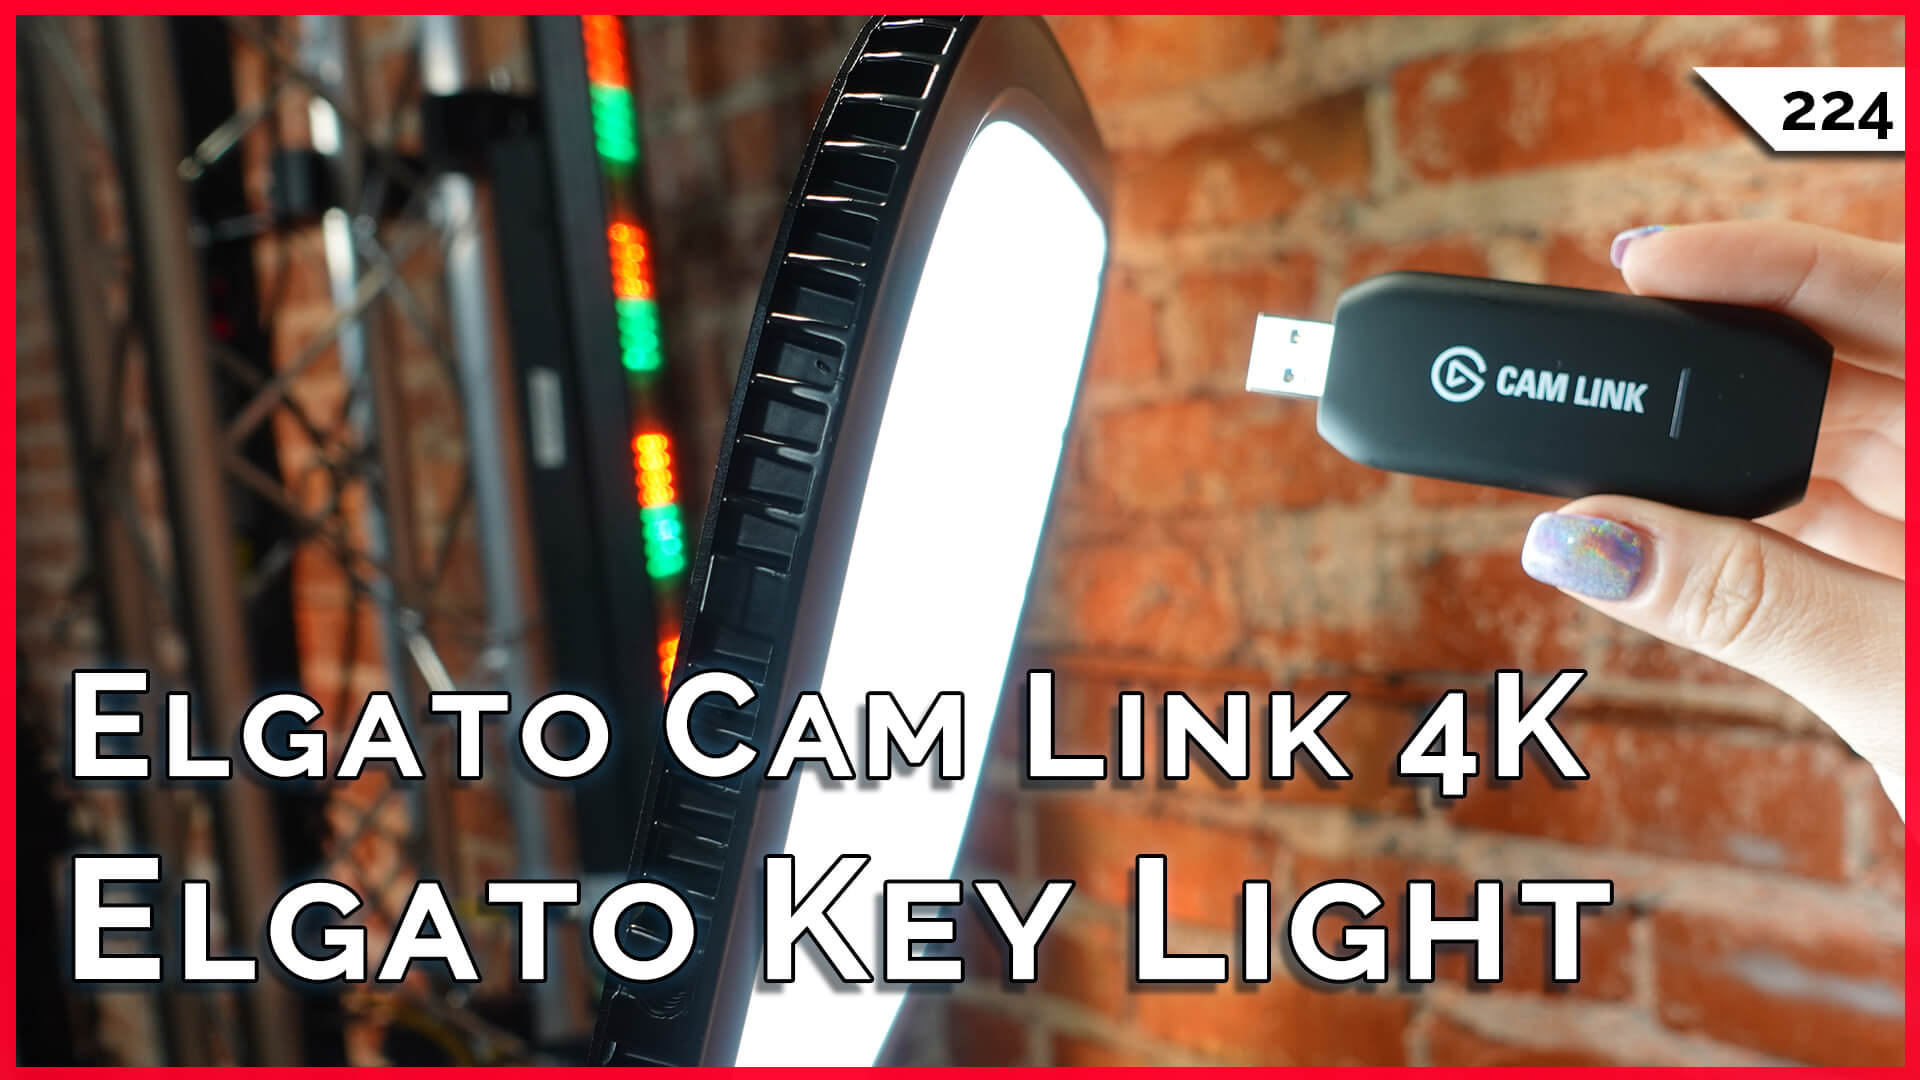 Elgato Cam Link 4K, Key Lights Reviewed! Windows Quick Removal, Urban Axe Throwing!!! — TekThing 224